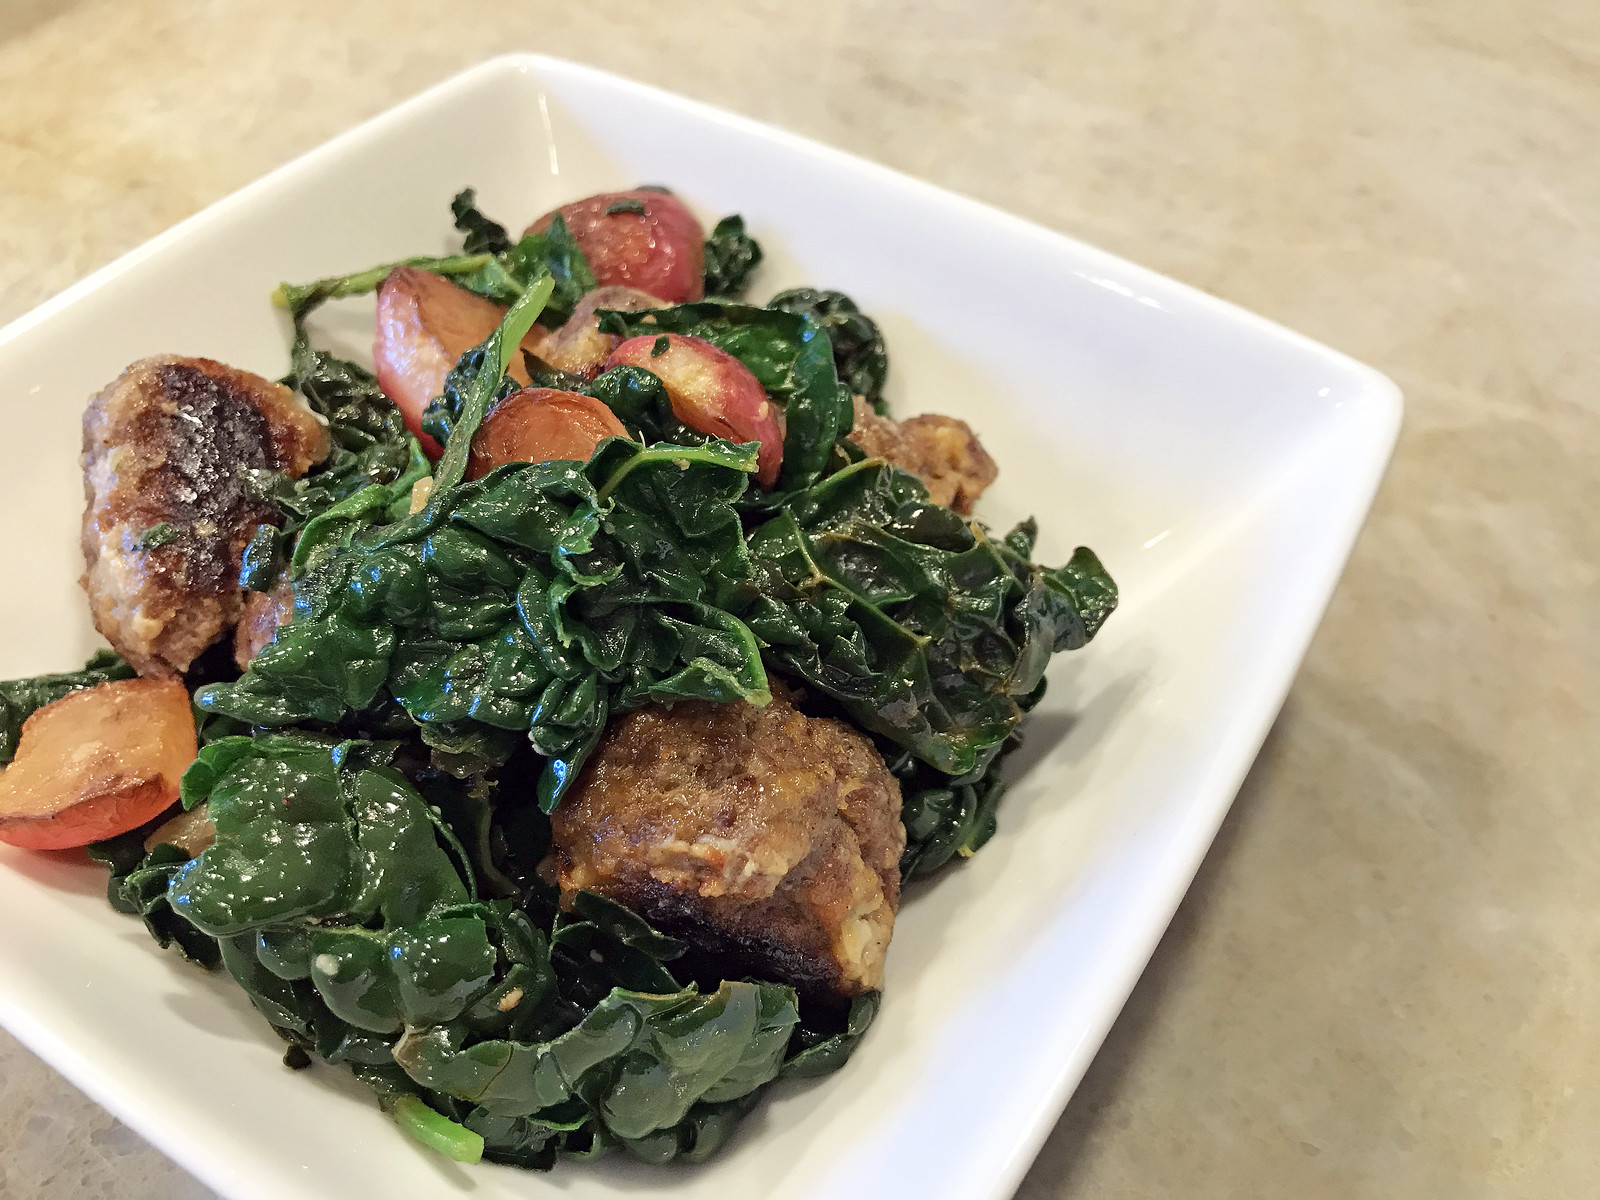 Beef meatballs with kale and radishes